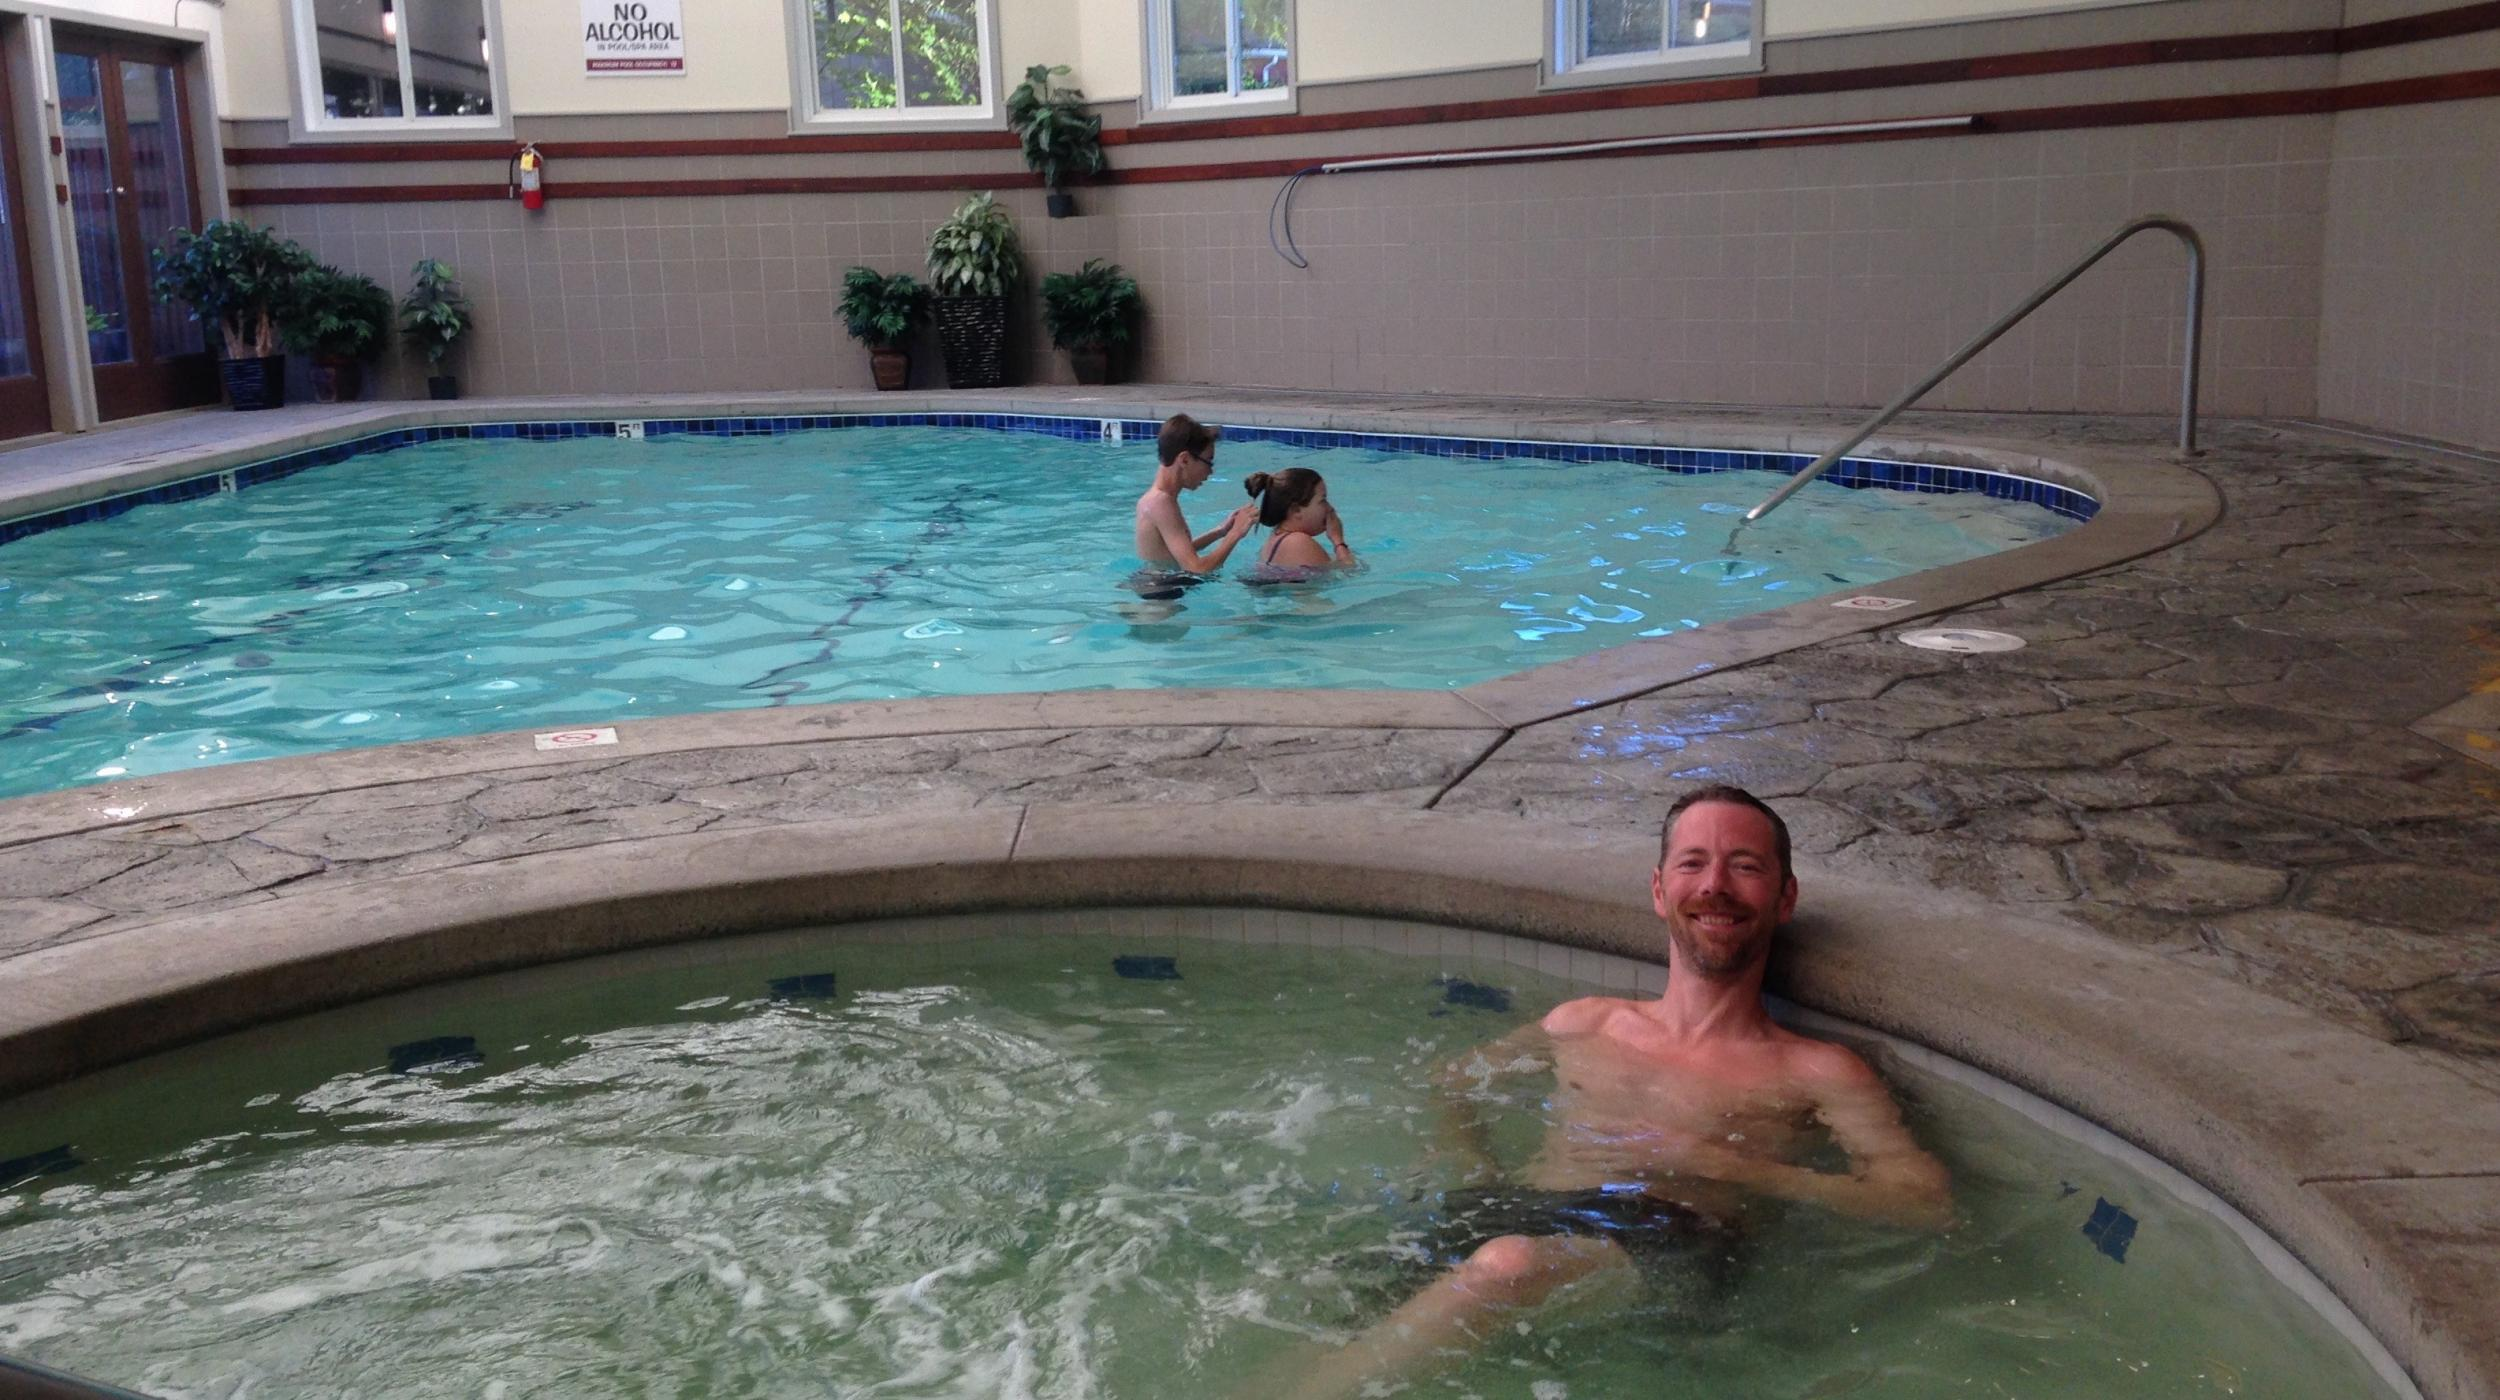 The Indoor Heated Pool at the Earthbox Inn & Spa